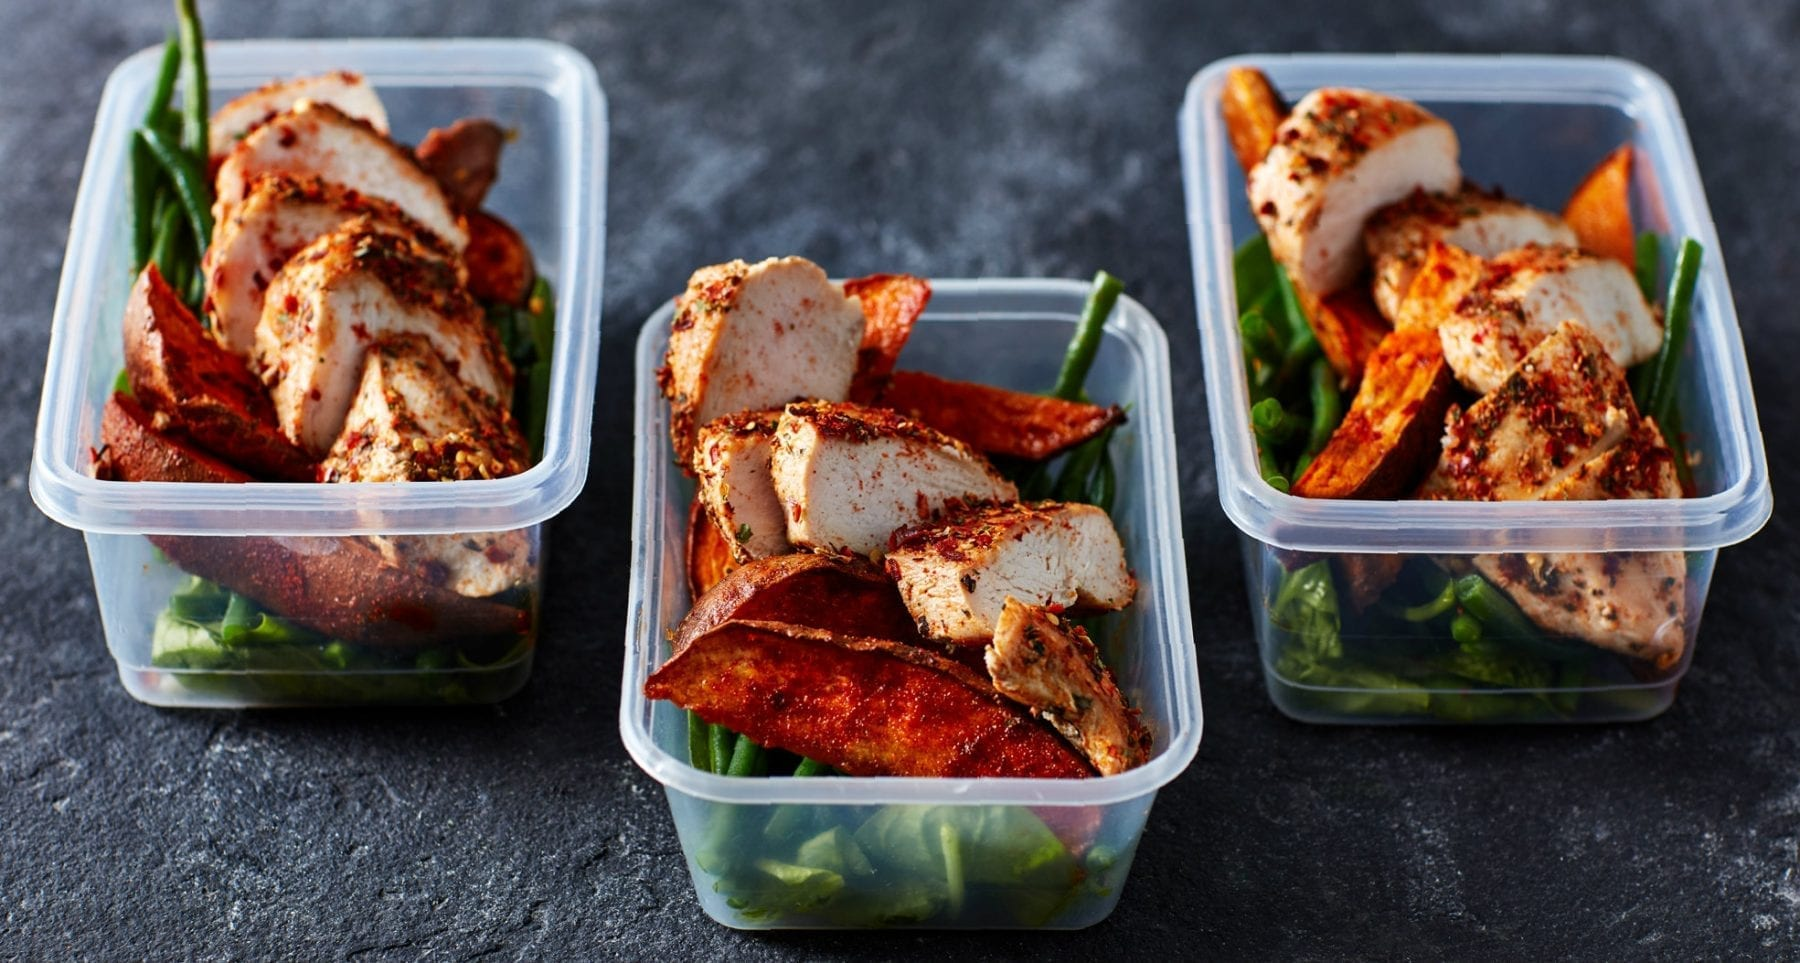 4 Day Meal Prep Idea | Chicken, Sweet Potato & Green Beans